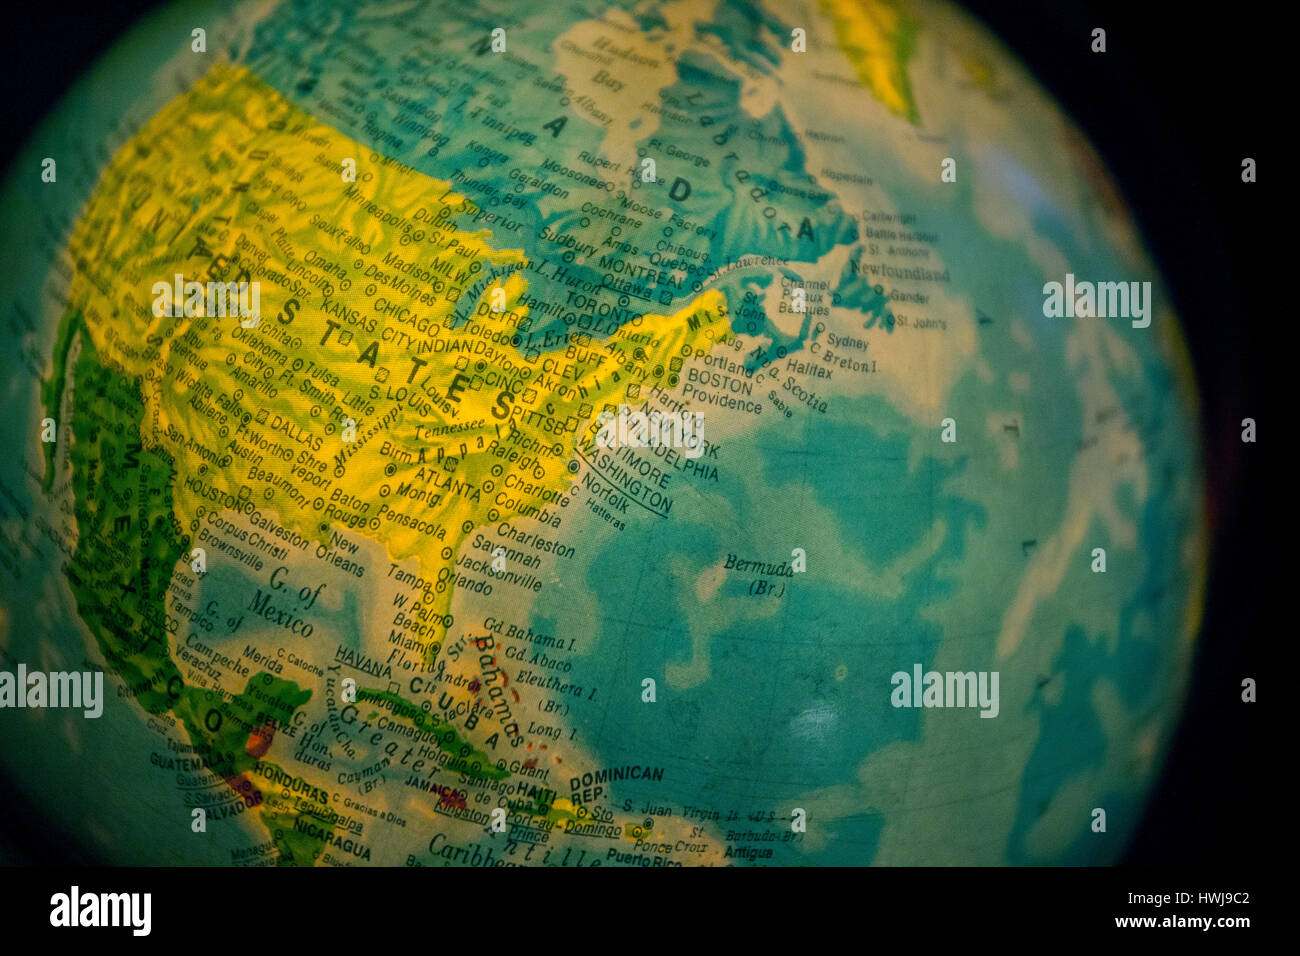 Close up of old fashioned world globe a ball shaped map lit from close up of old fashioned world globe a ball shaped map lit from within focusing on atlantic east coast north america canada gumiabroncs Images